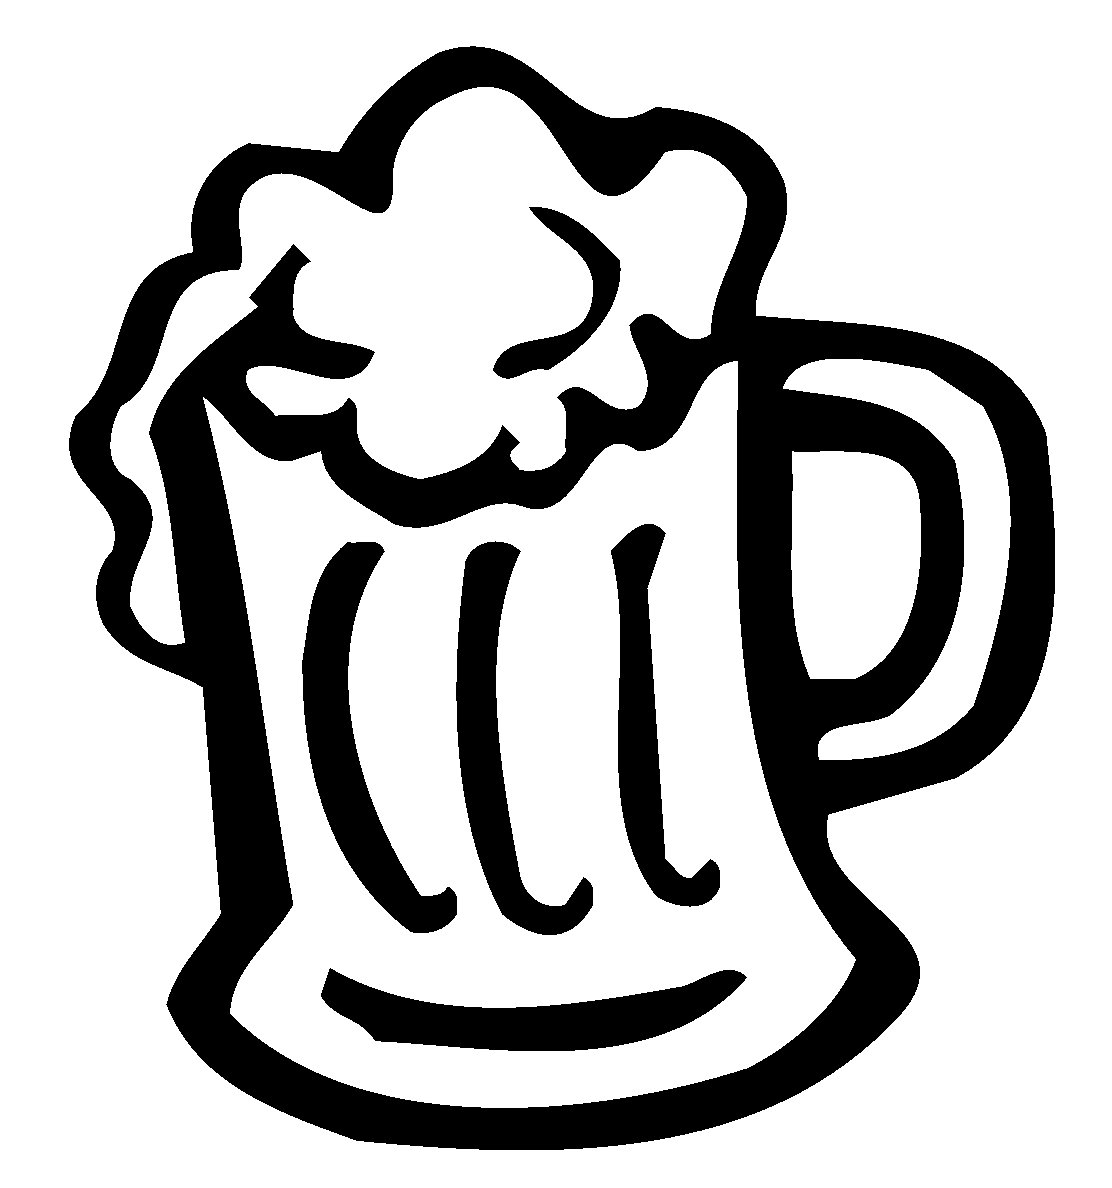 Beer Mug Decal Beer Mug Sticker